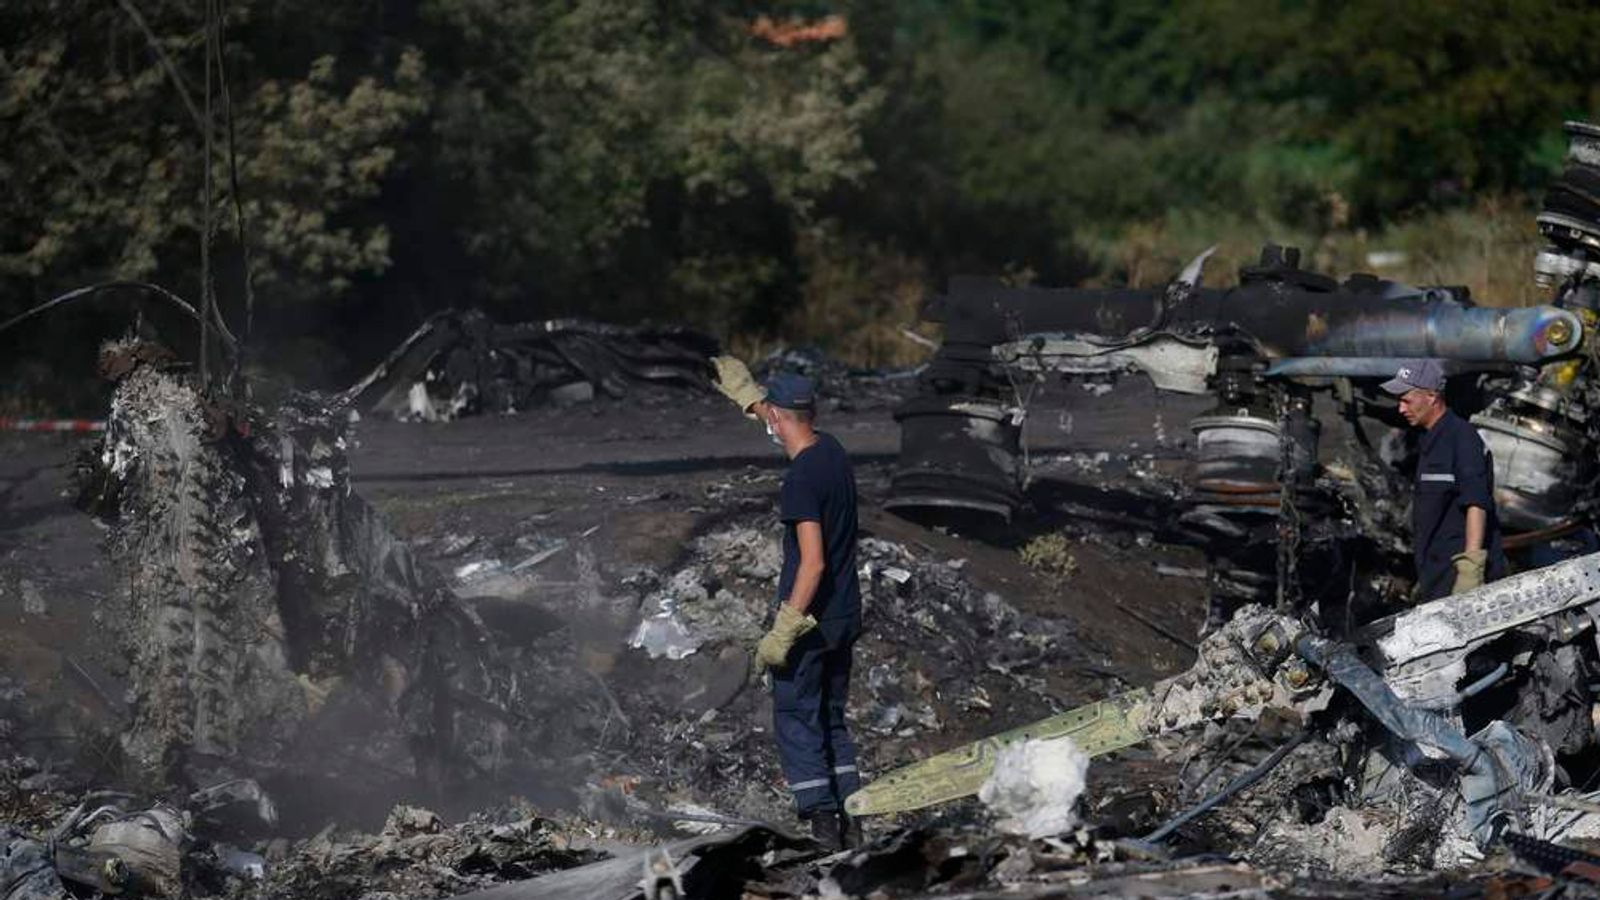 Members of the Ukrainian Emergencies Ministry work at the crash site of Malaysia Airlines Flight MH17 near the village of Hrabove, Donetsk region